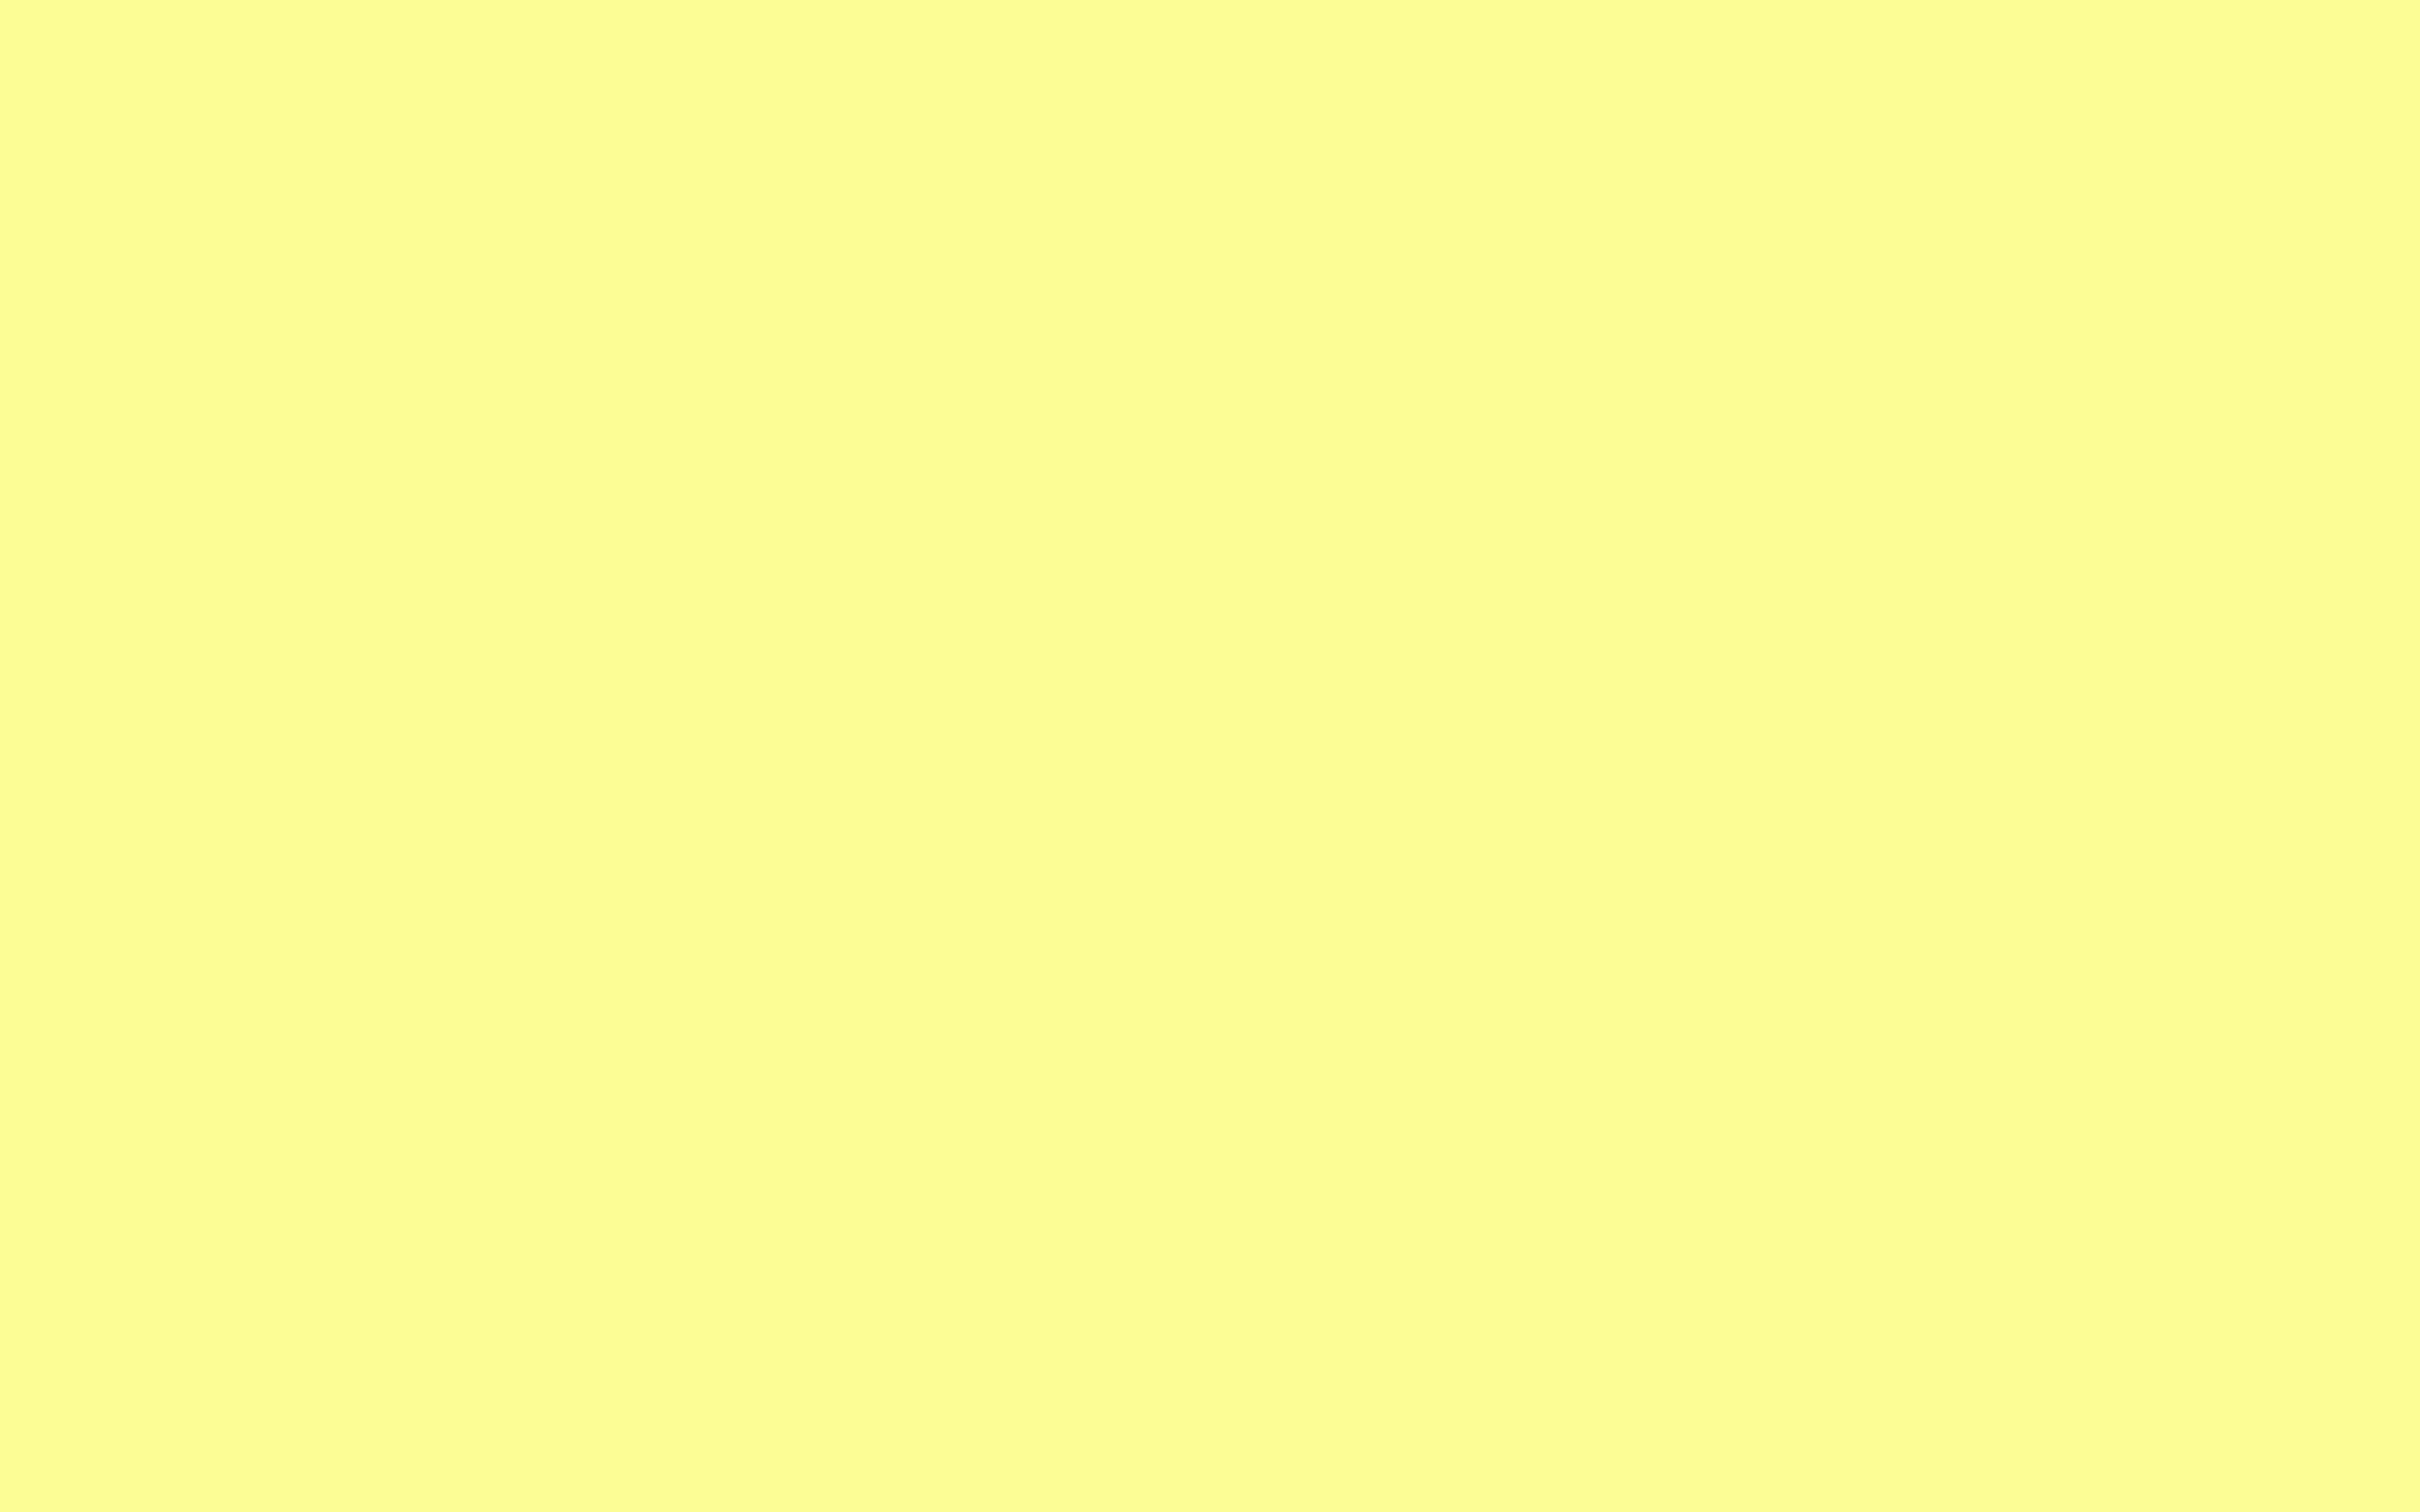 2560×1600-pastel-yellow-solid-color-background